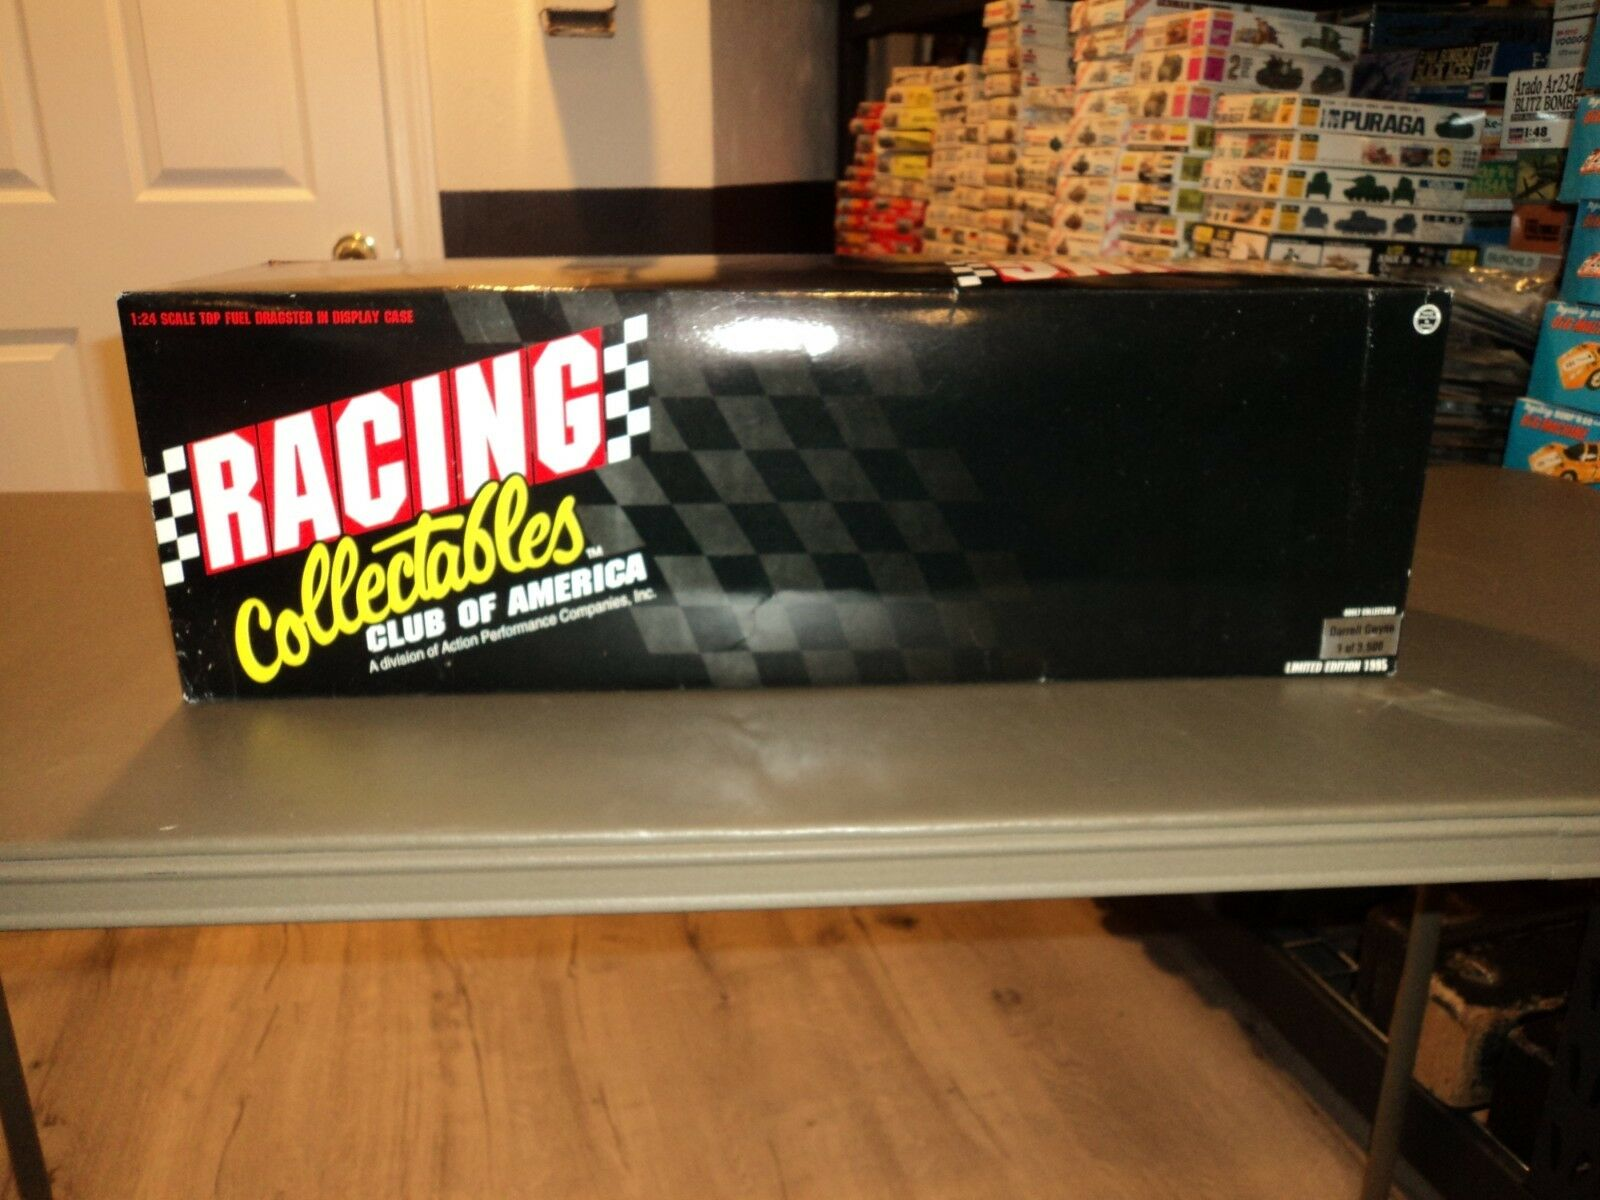 Nuevo 1 24 Die Cast Top Fuel Dragster Darrell Gwynn Coors 1995 Vitrina Racing Collectables Club of America